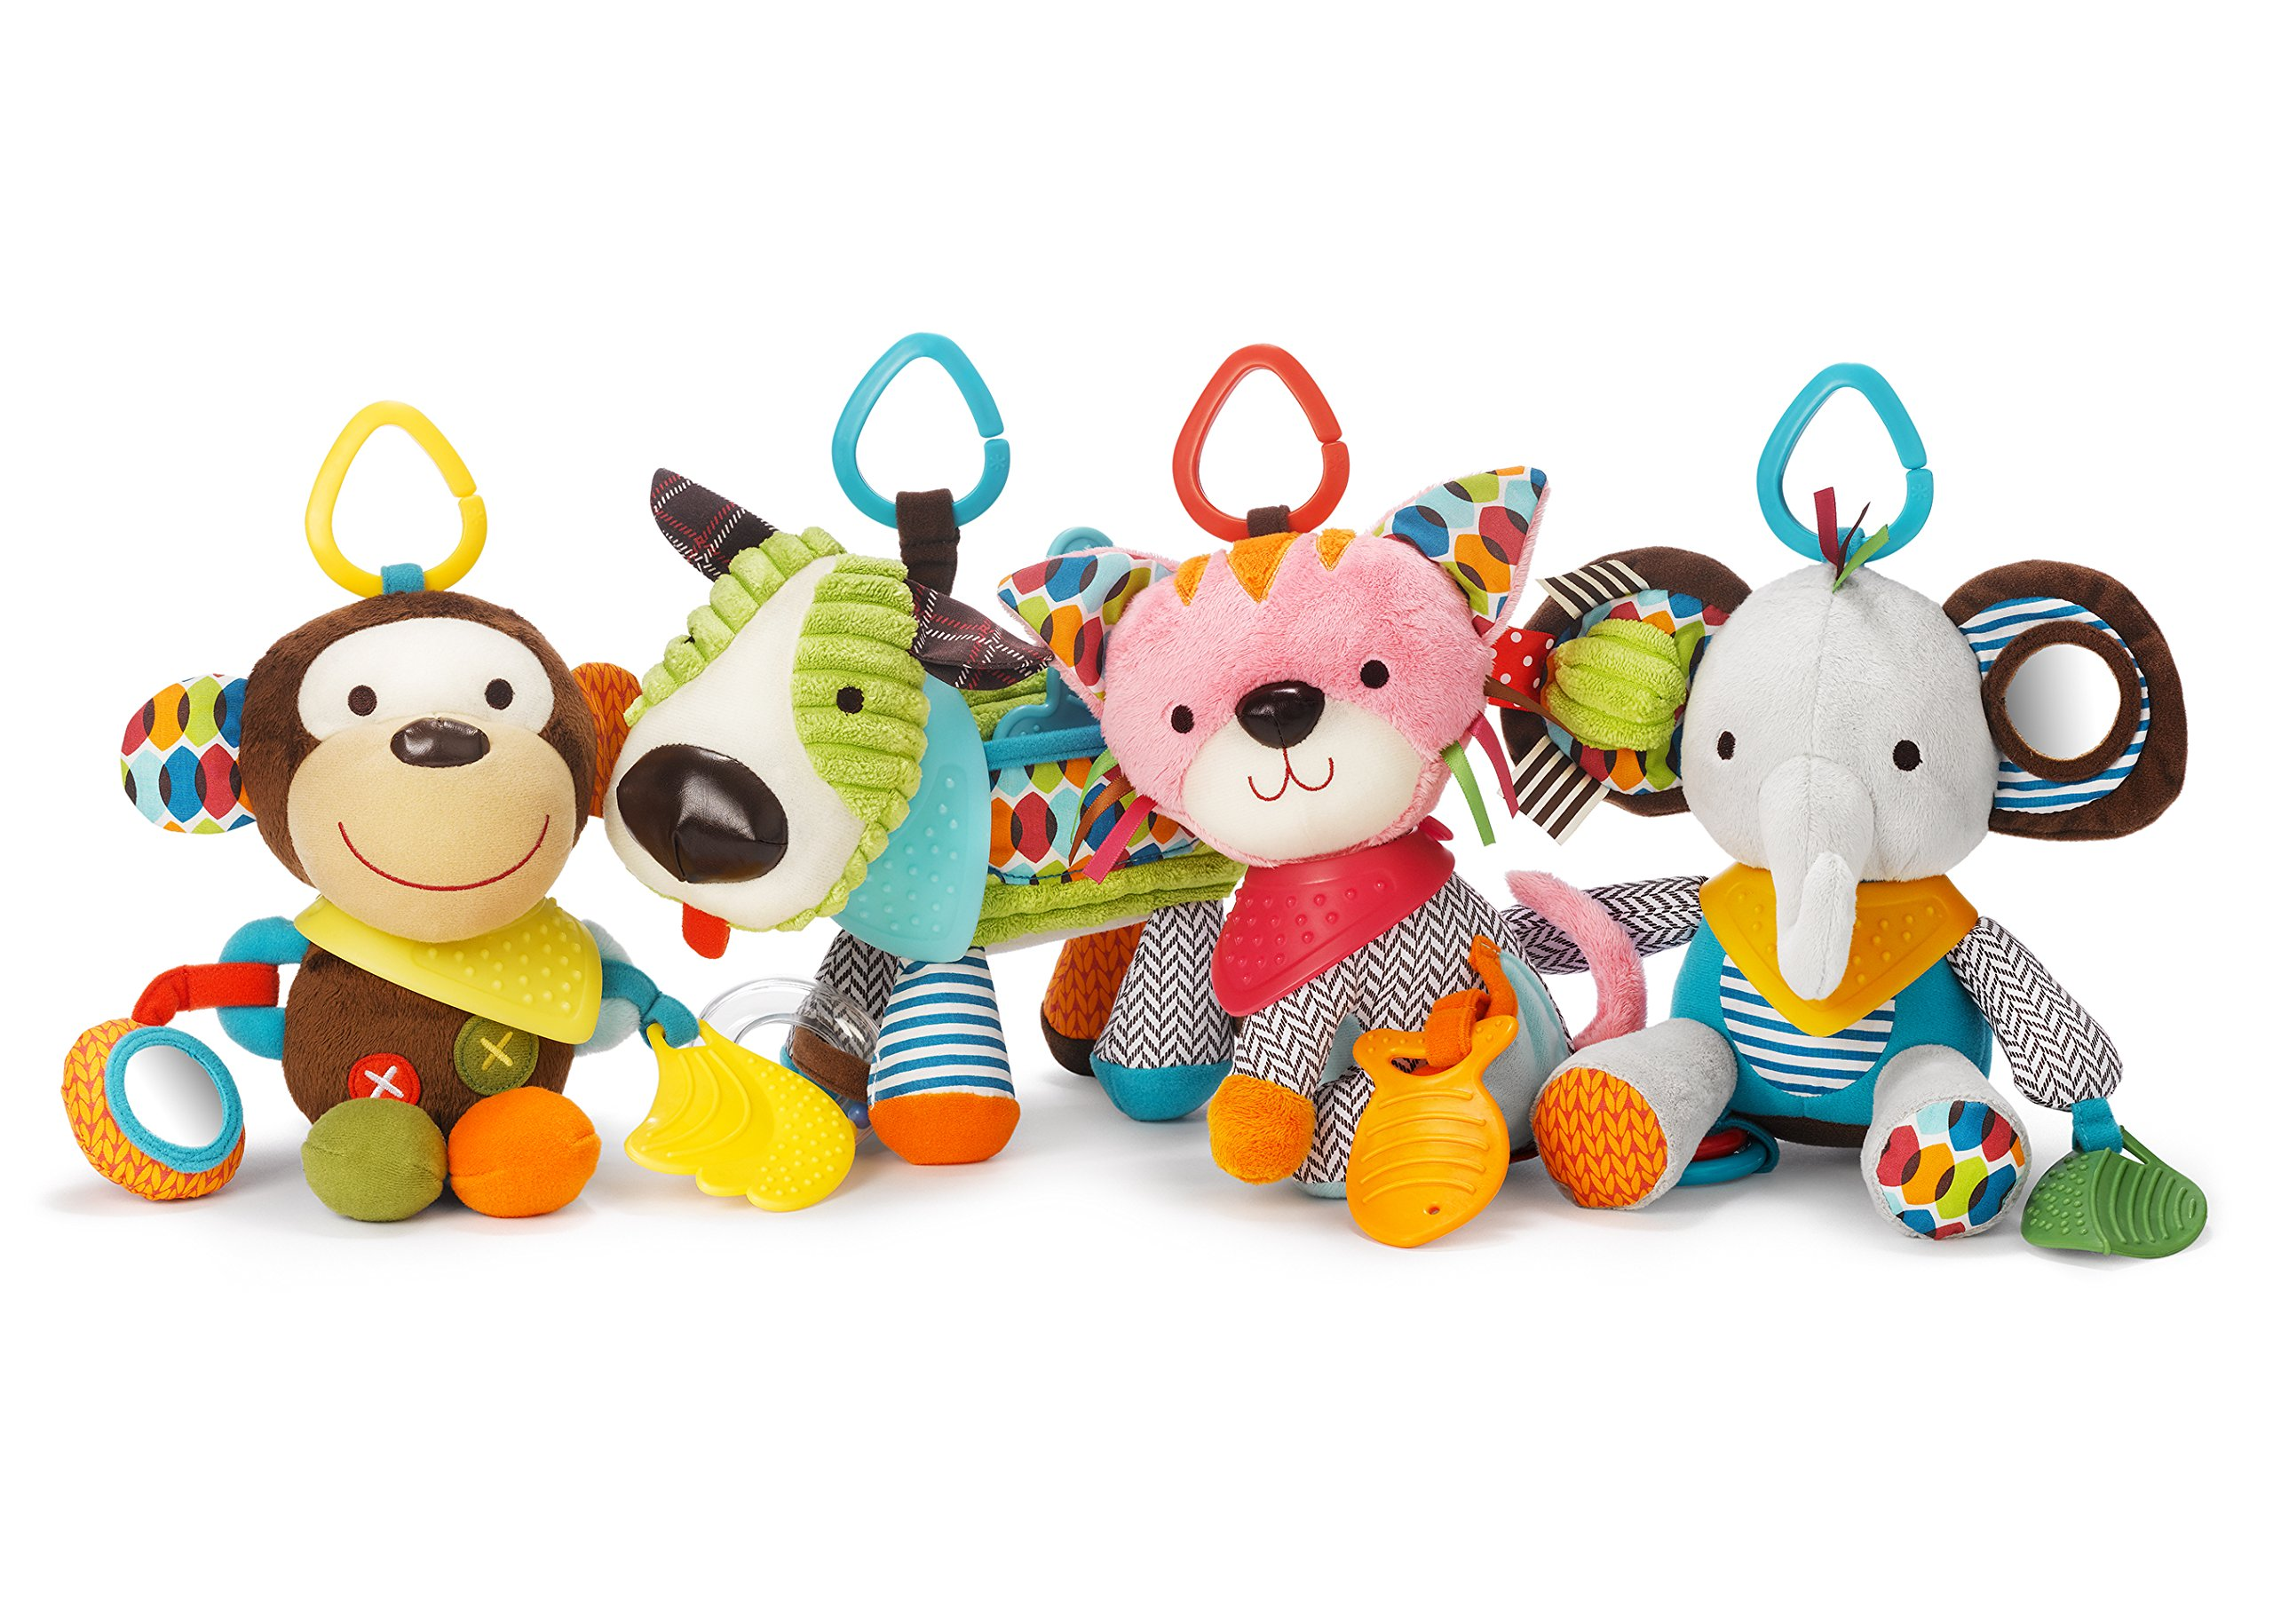 Skip Hop Bandana Buddies Baby Activity and Teething Toy with Multi-Sensory Rattle and Textures, Raccoon